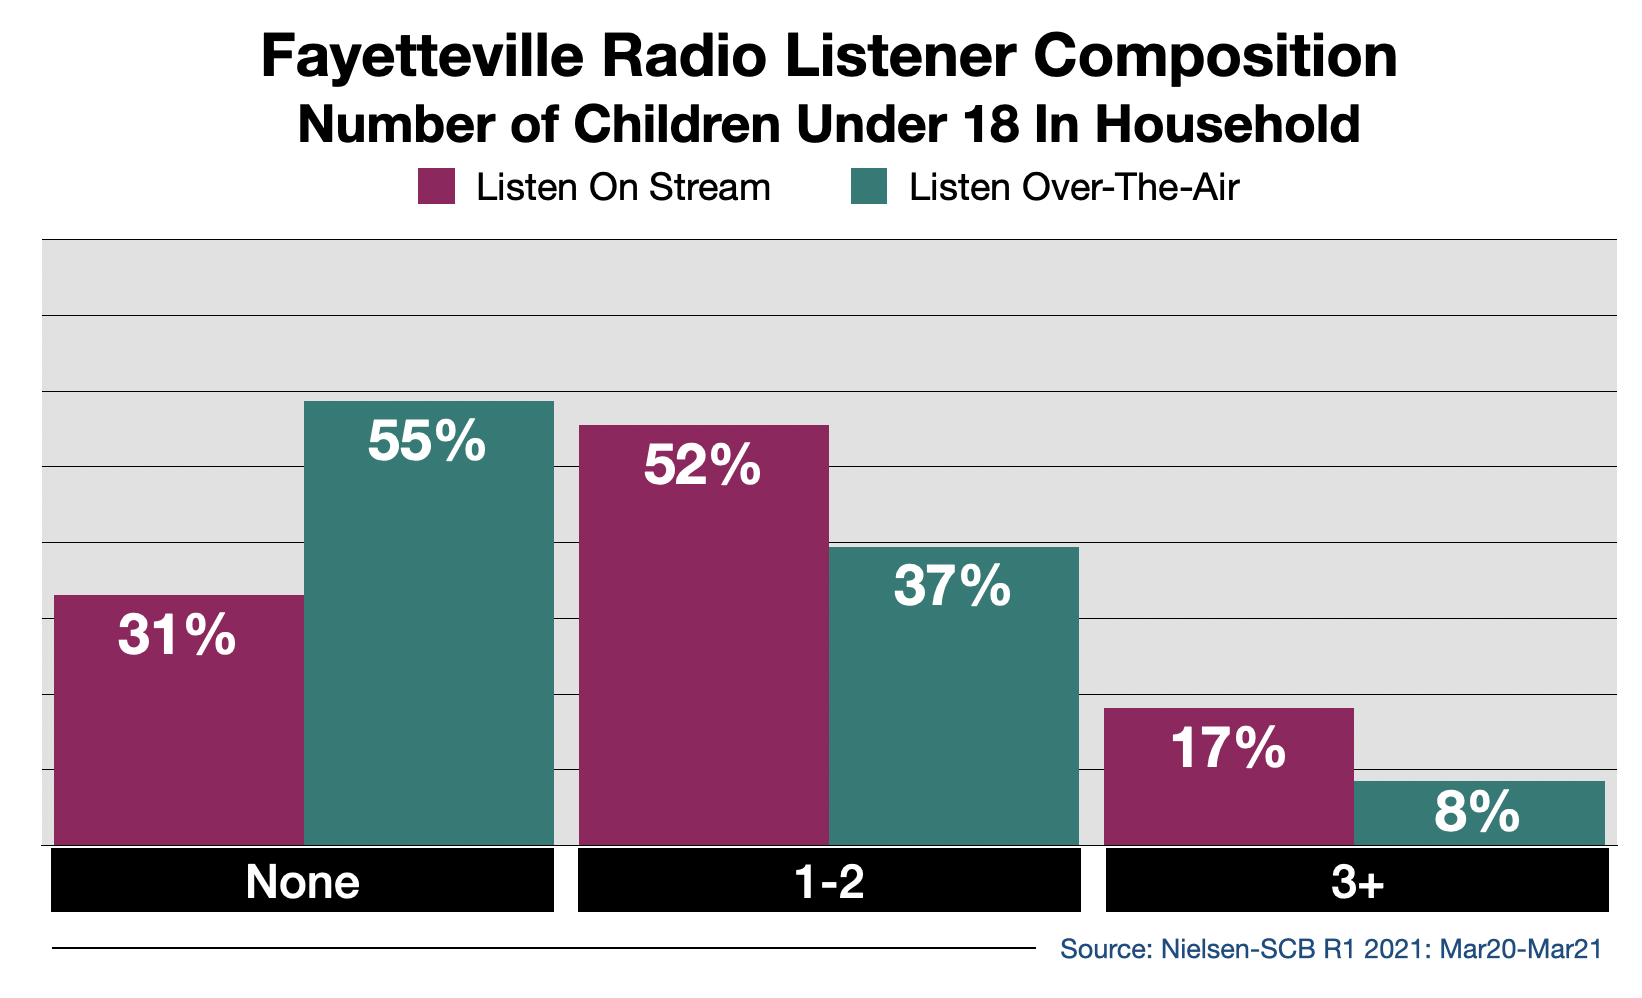 Advertise on Fayetteville Radio Streaming Audio By Number Of Children in Household